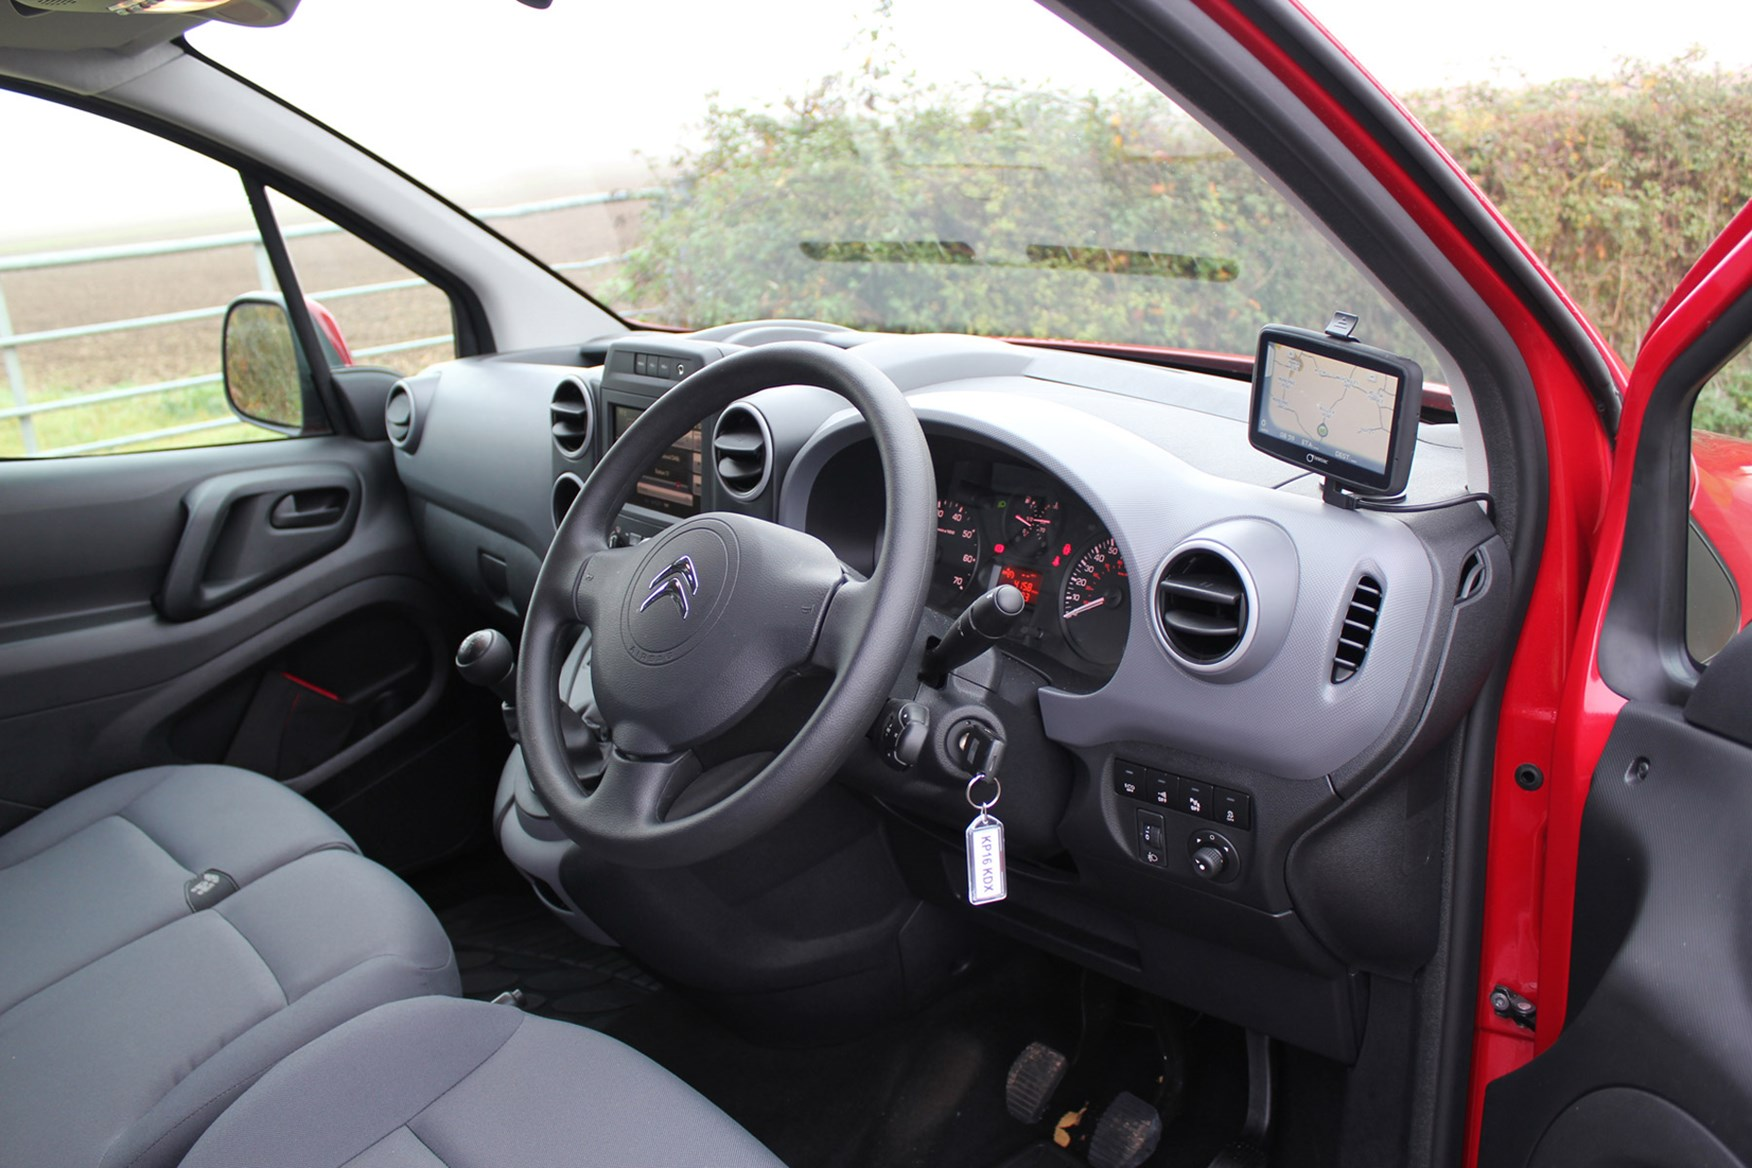 Citroen Berlingo full review on Parkers Vans - interior